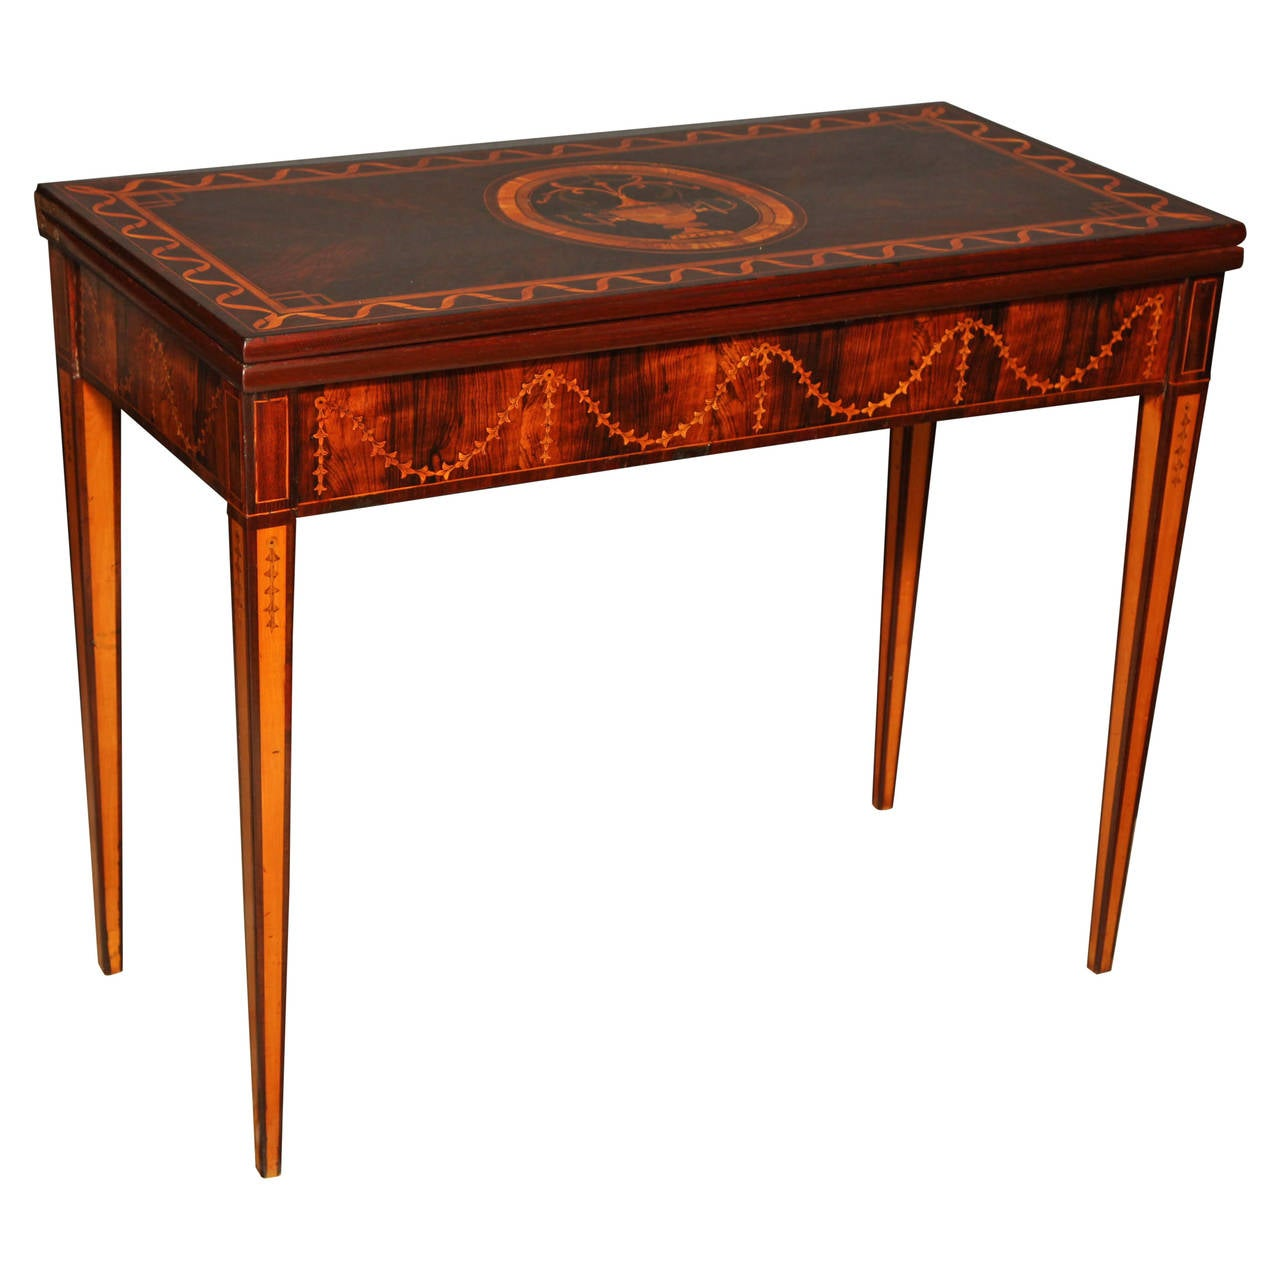 Russian Neoclassical Game Table